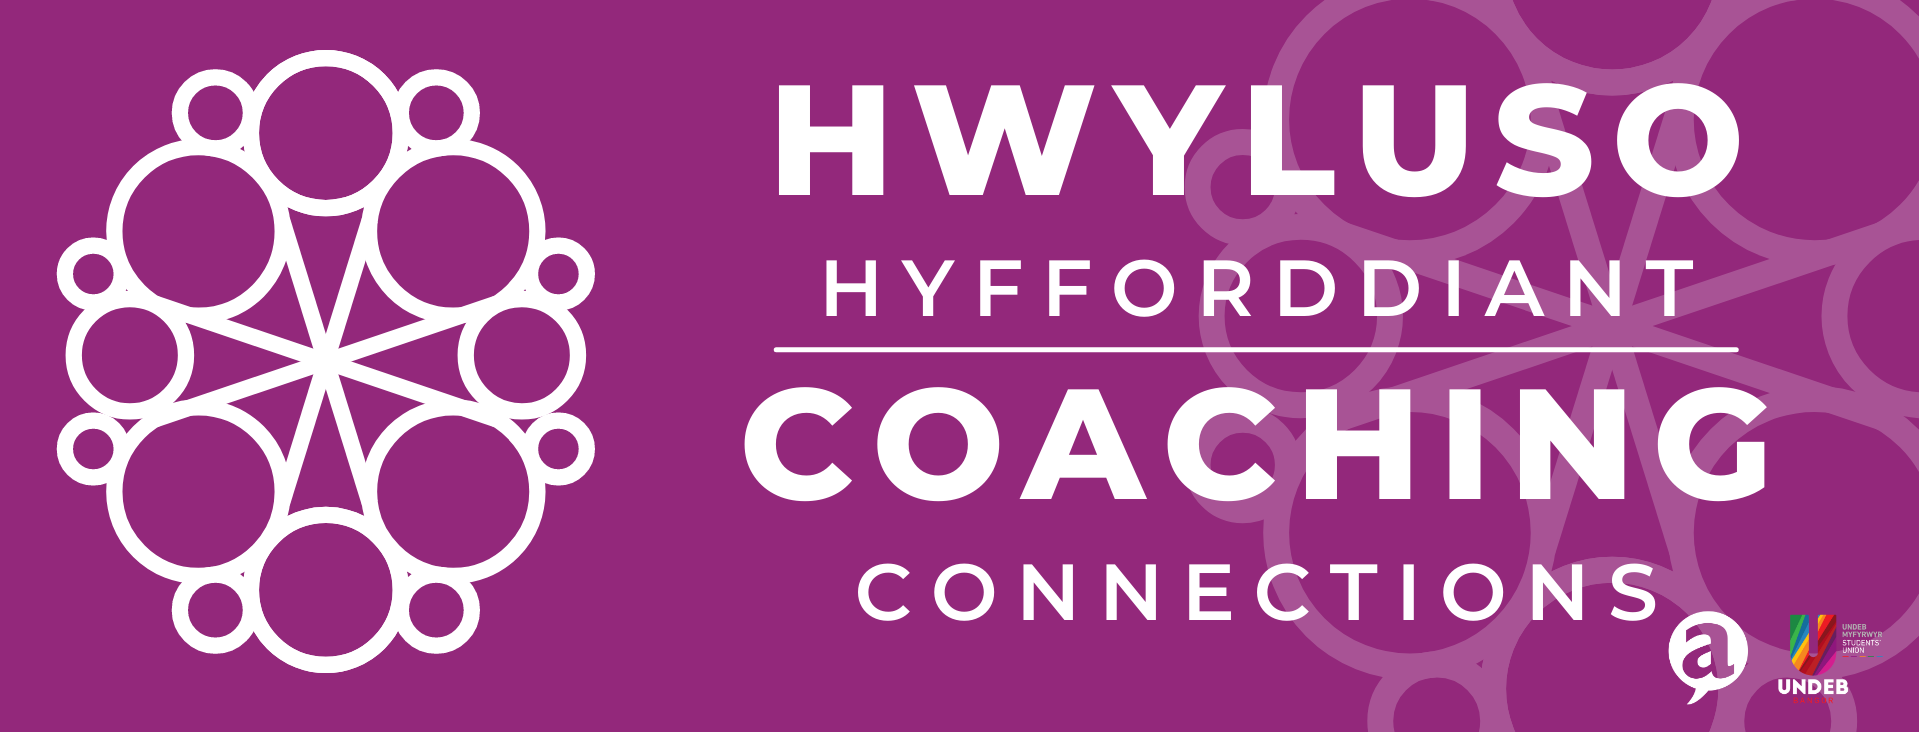 Coaching connections web banner